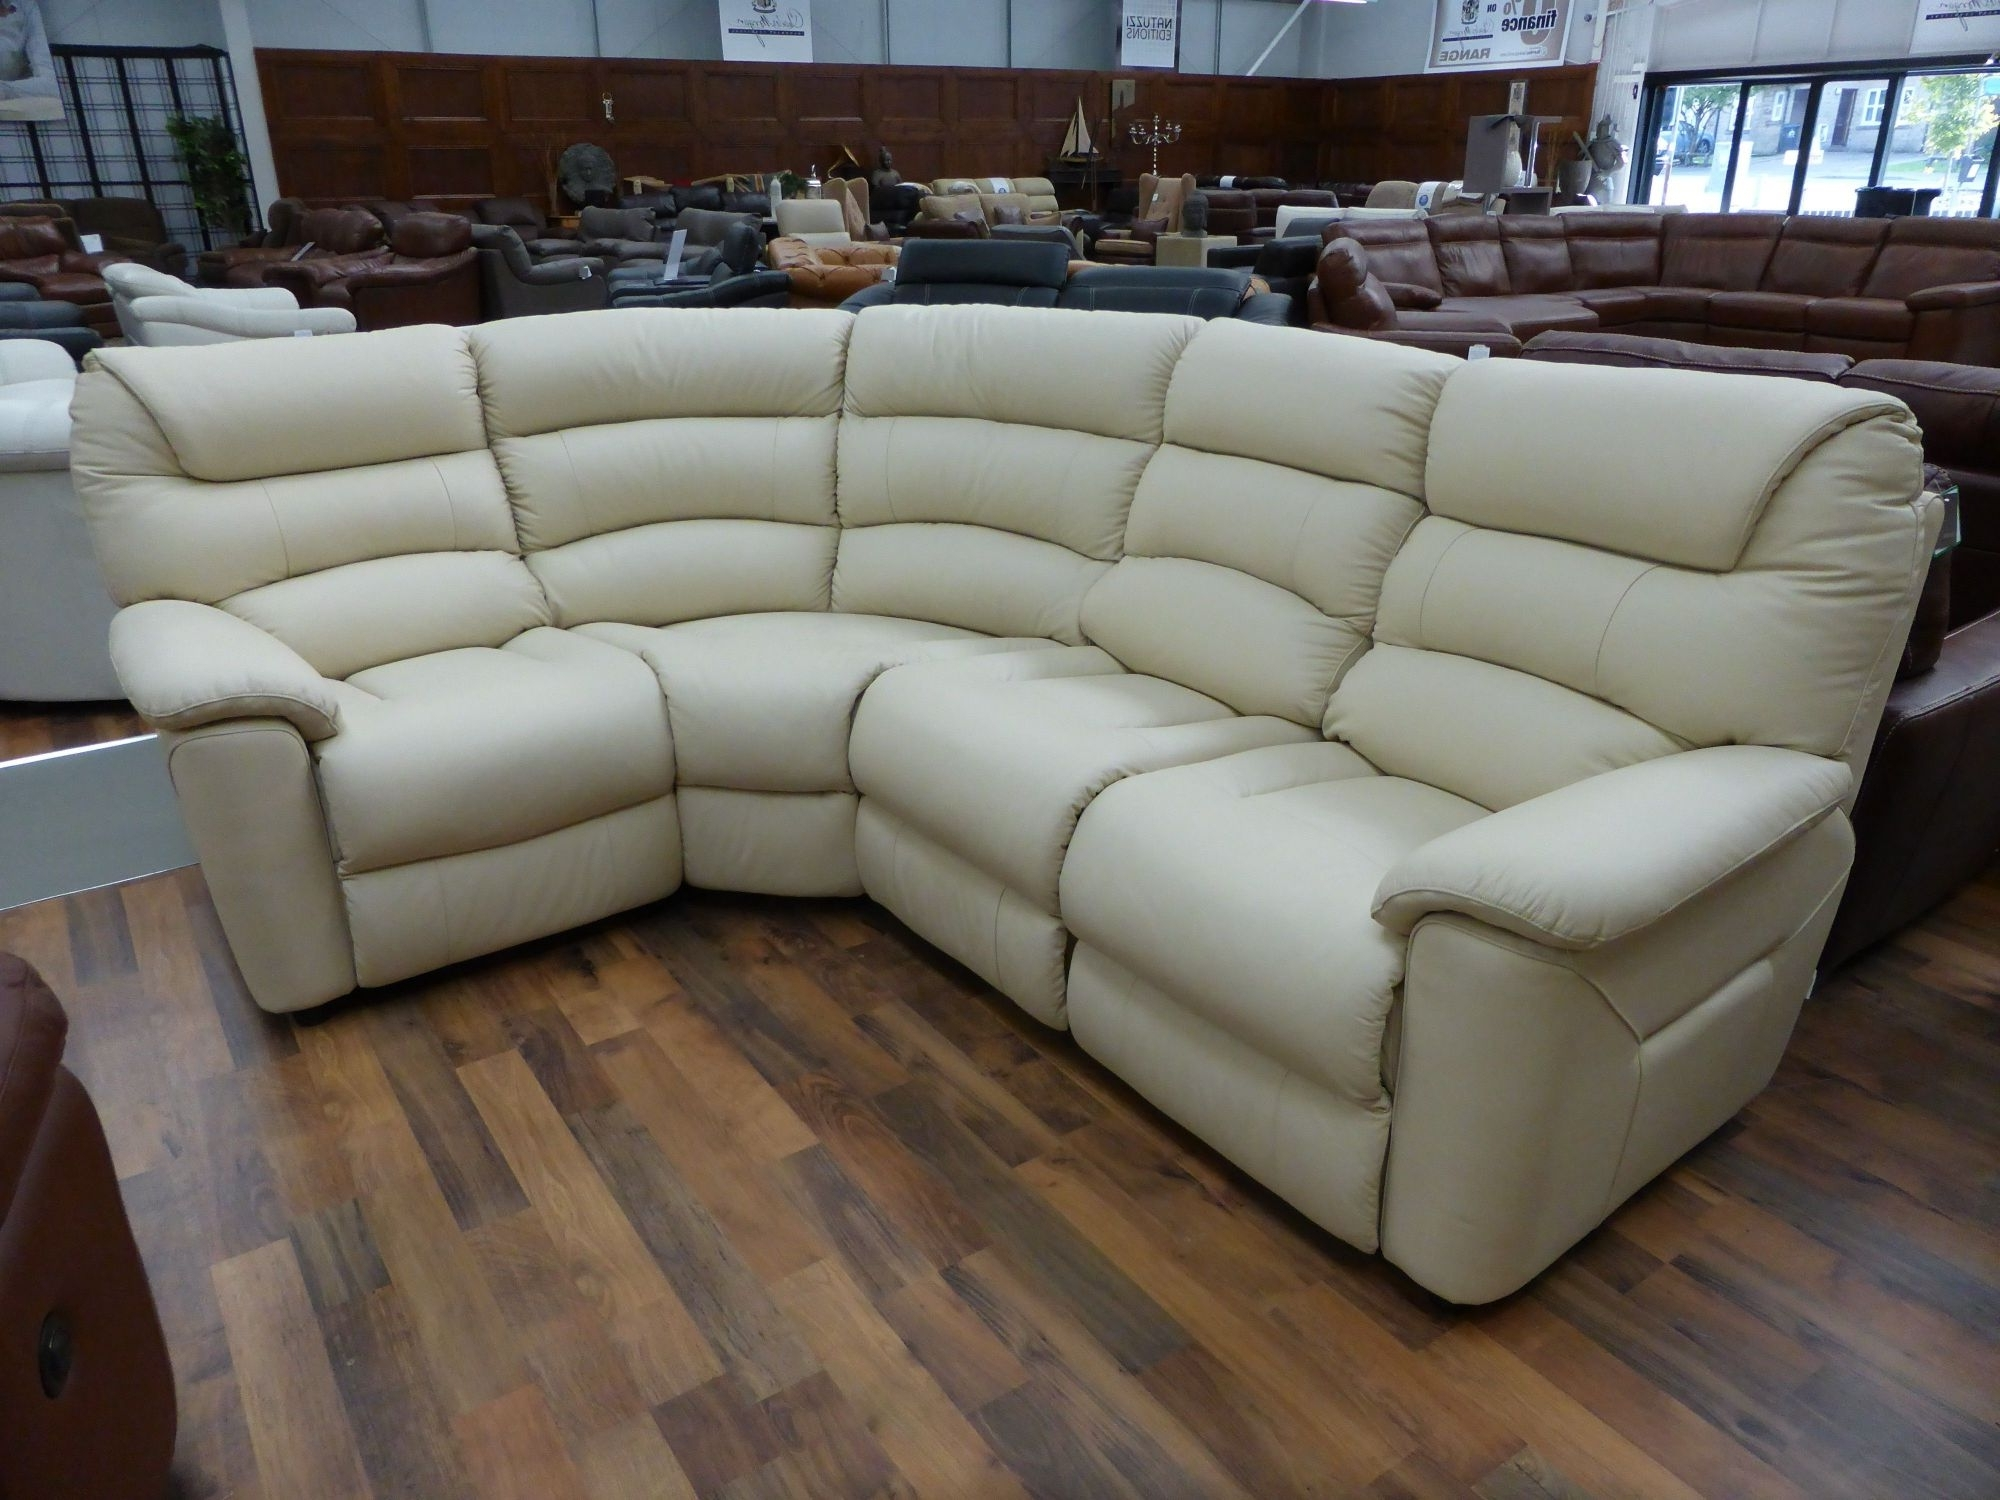 Popular Sectional Sofas At Lazy Boy With Regard To Incredible Laboy Sofa Frame Construction Leather Reclining (View 16 of 20)